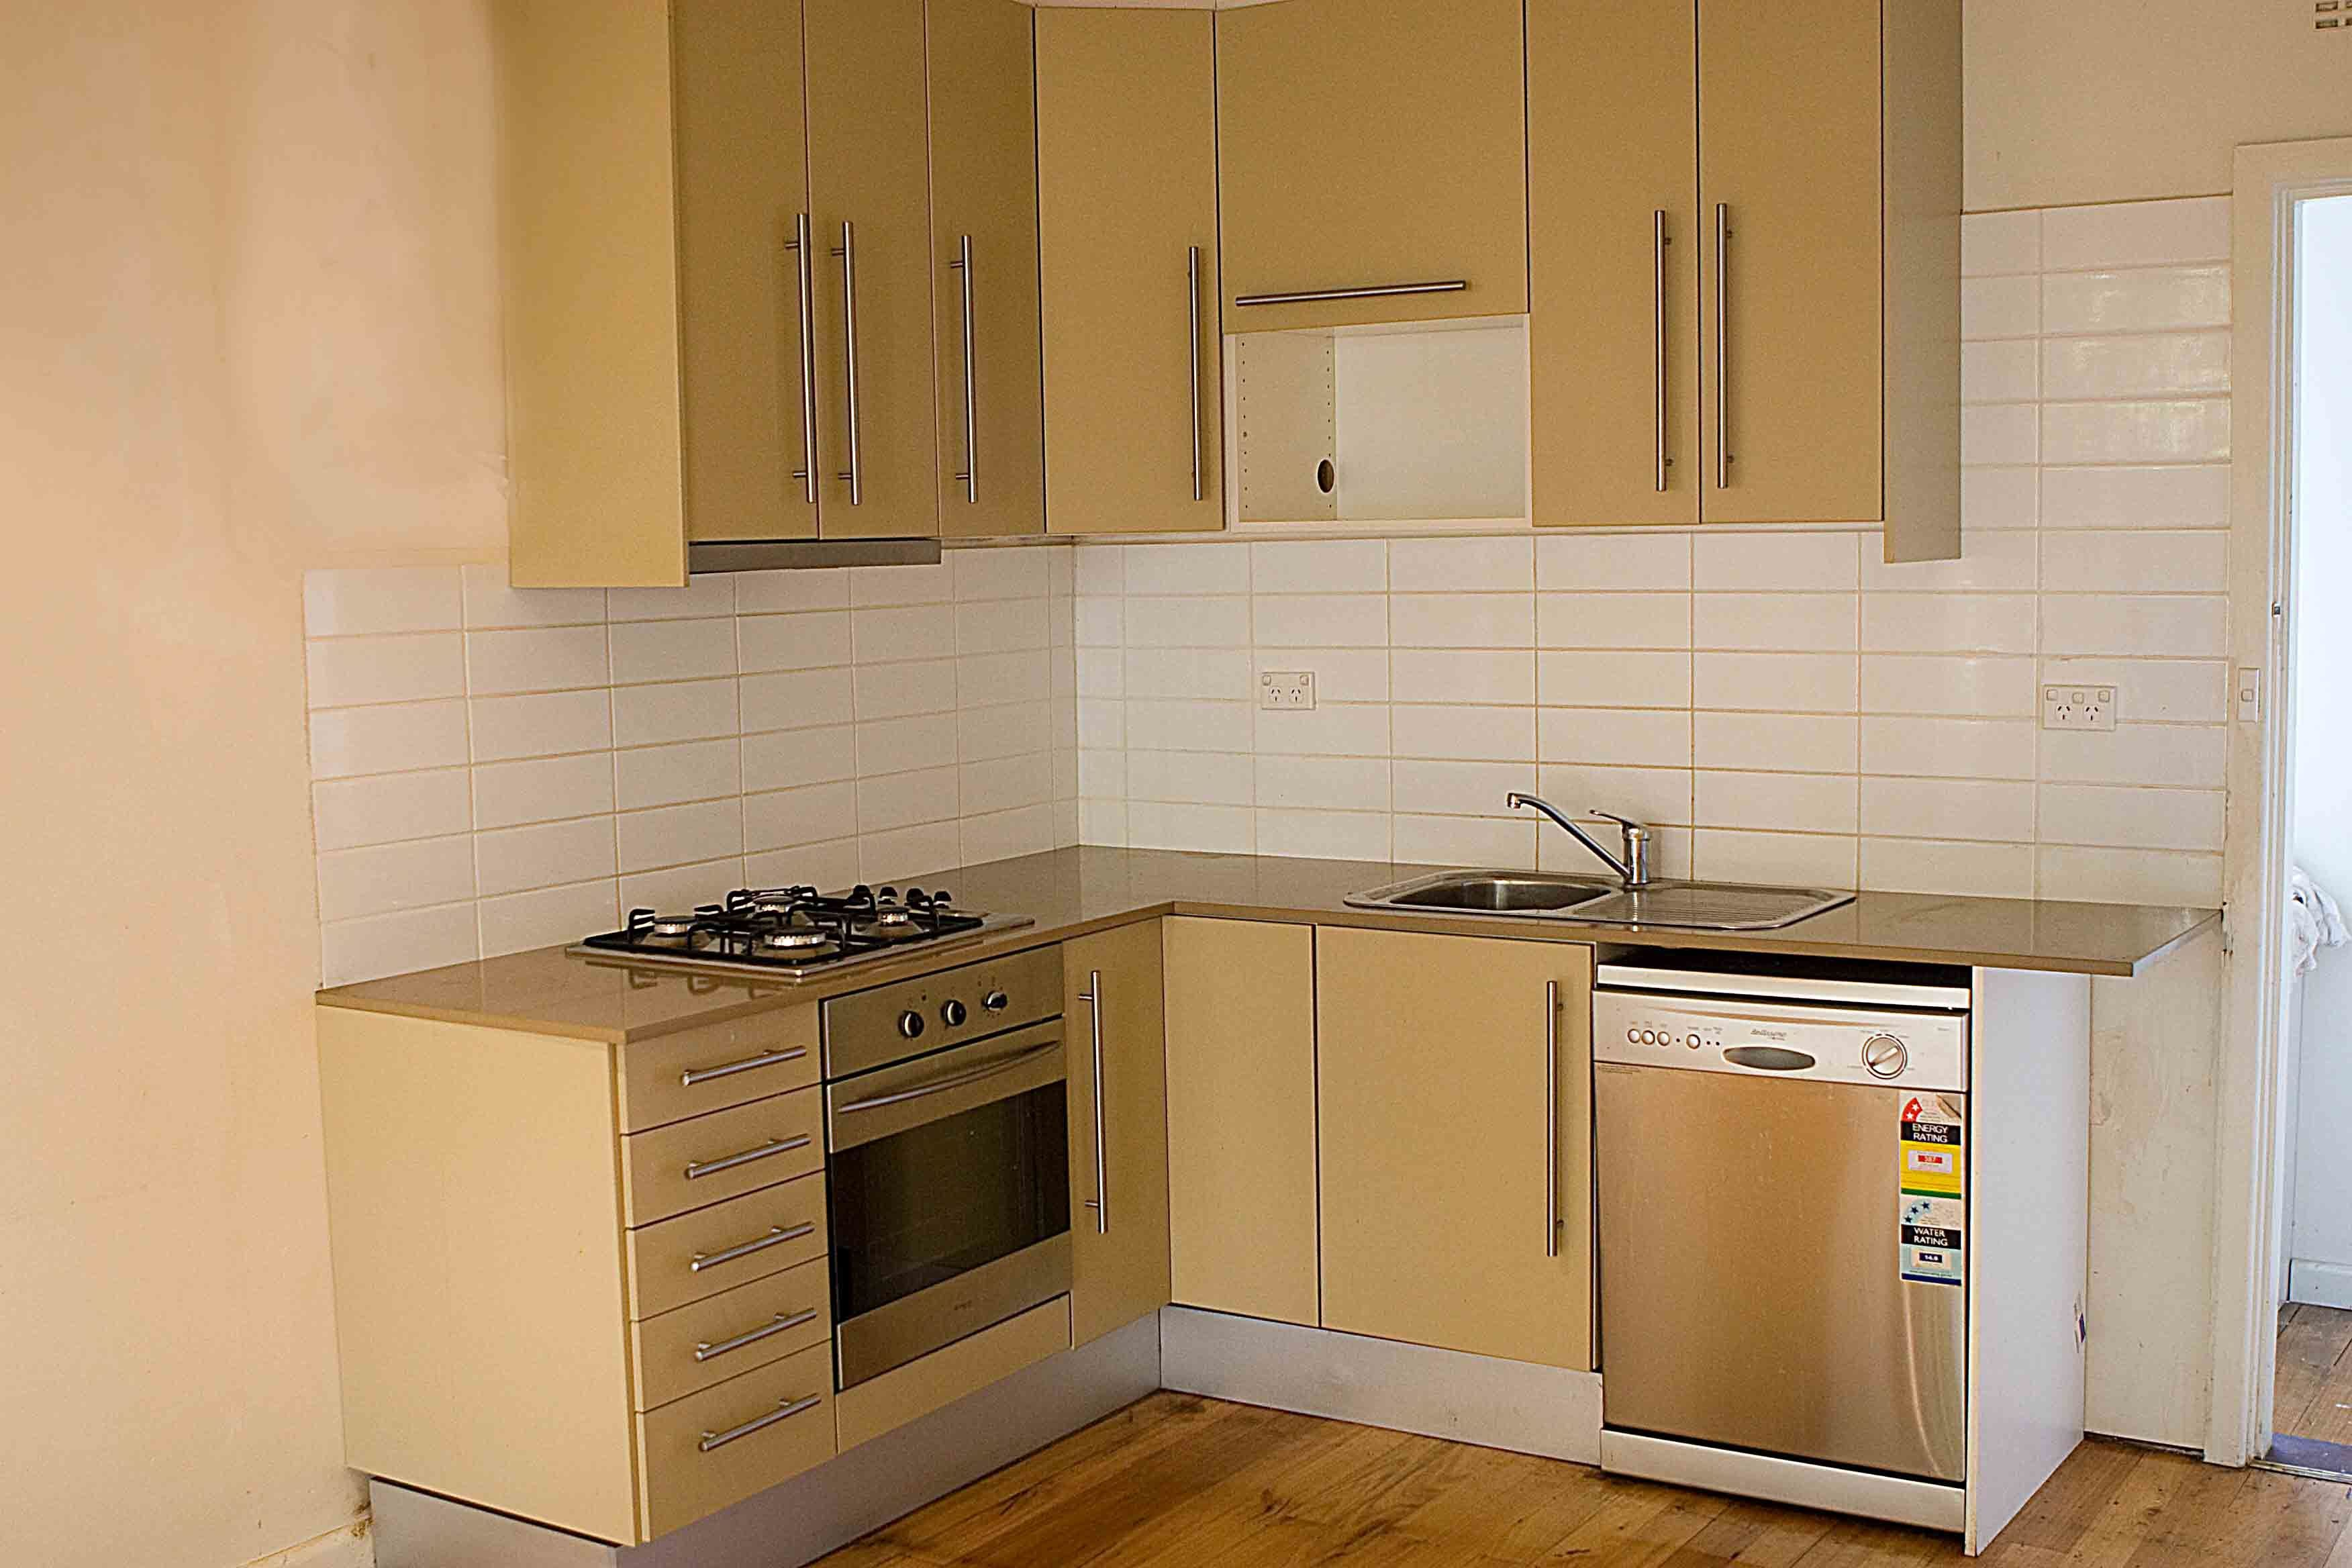 Discover The Greatest Luxurious Small Kitchen Cabinet Concepts On A Finances Openplank Small Modern Kitchens Small Kitchen Cabinet Design Small Space Kitchen